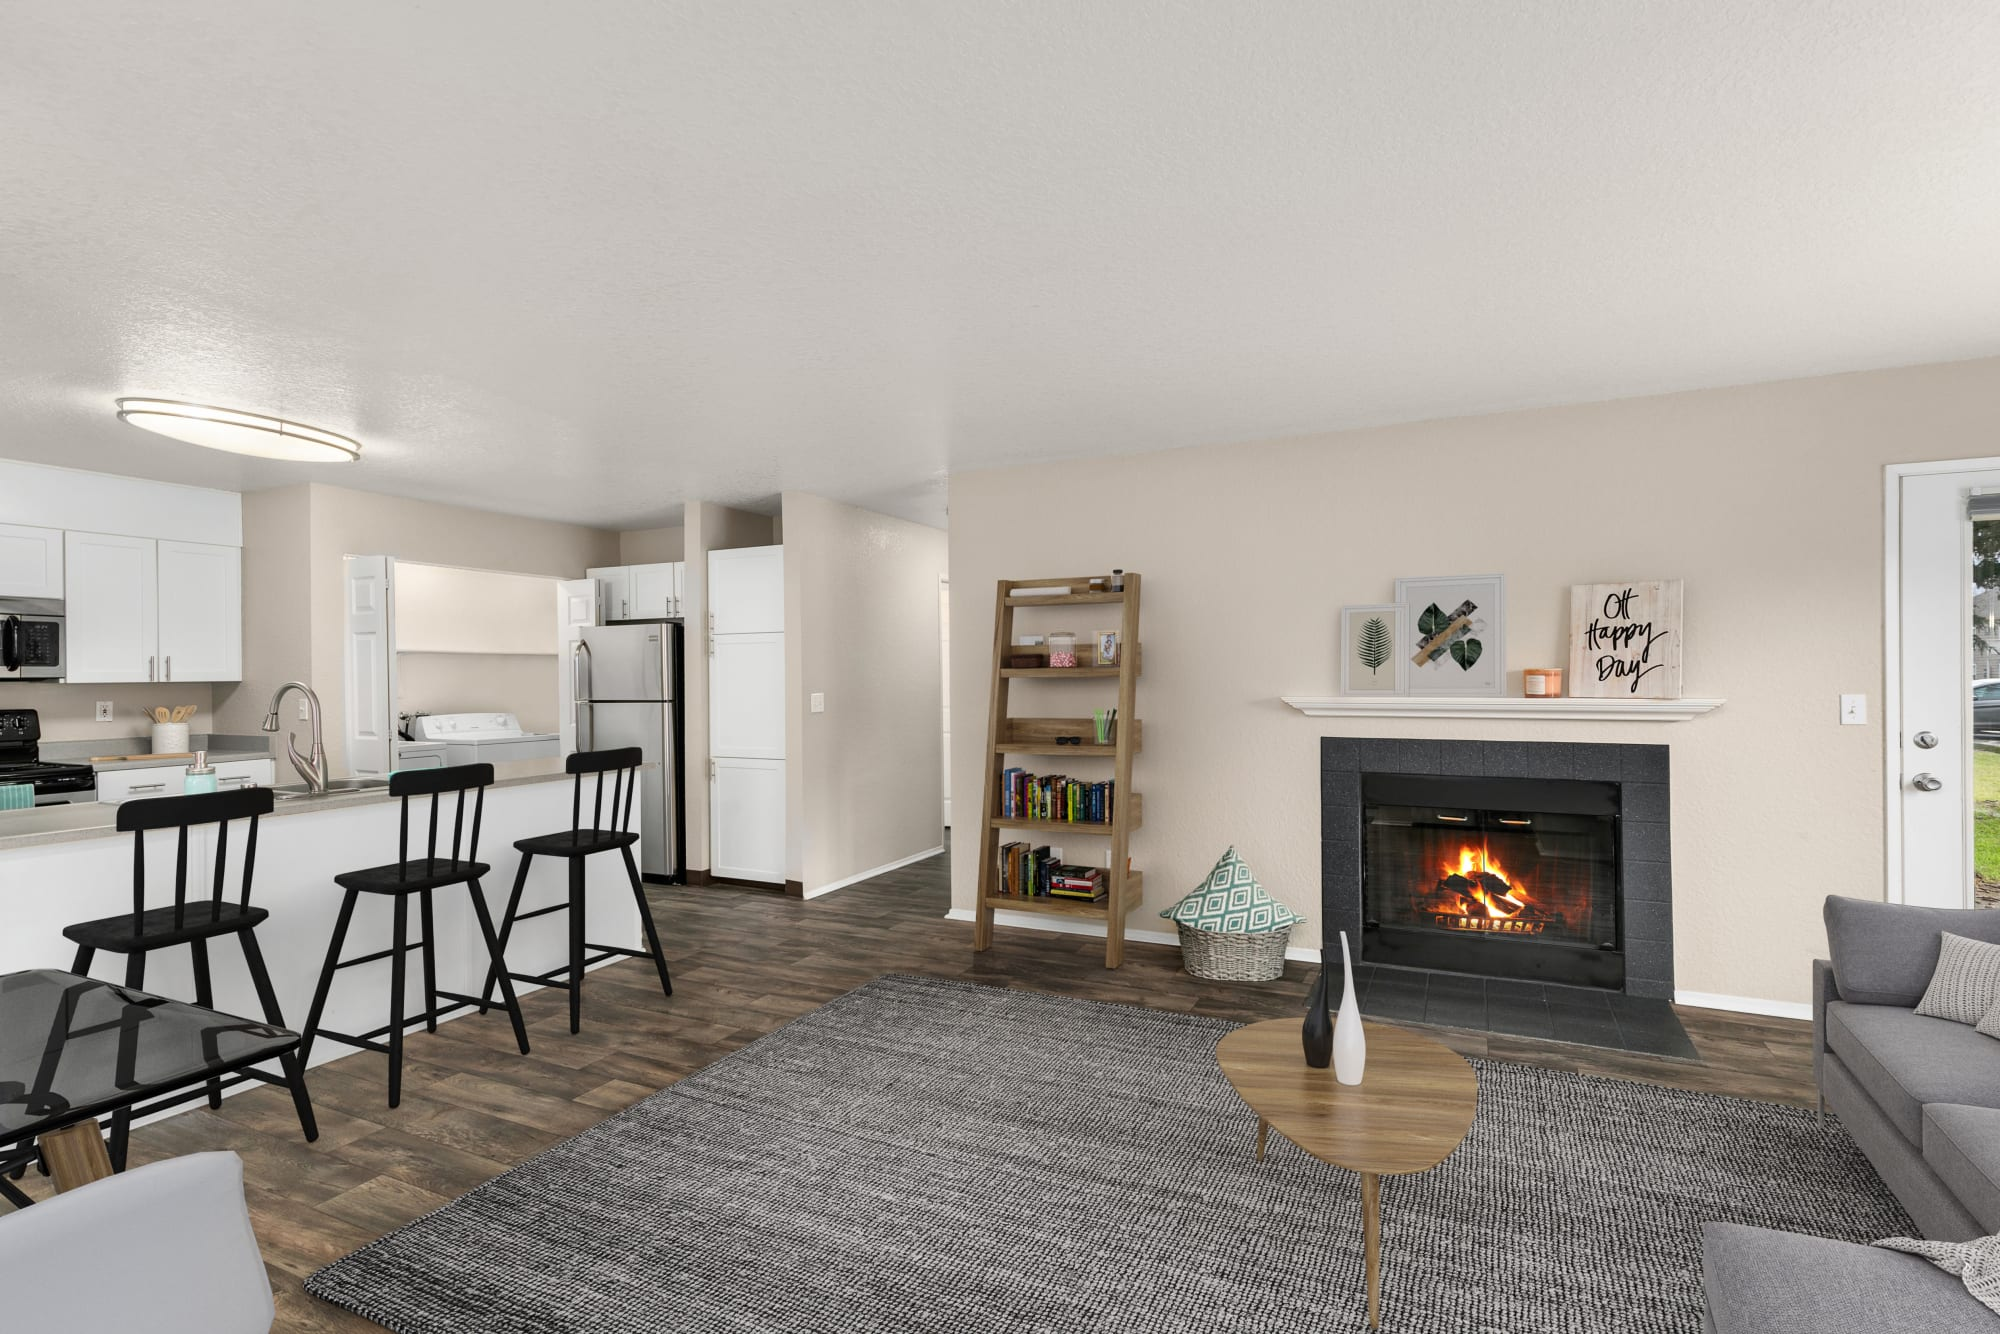 Living room with a fireplace and hardwood-style floors at Carriage Park Apartments in Vancouver, Washington